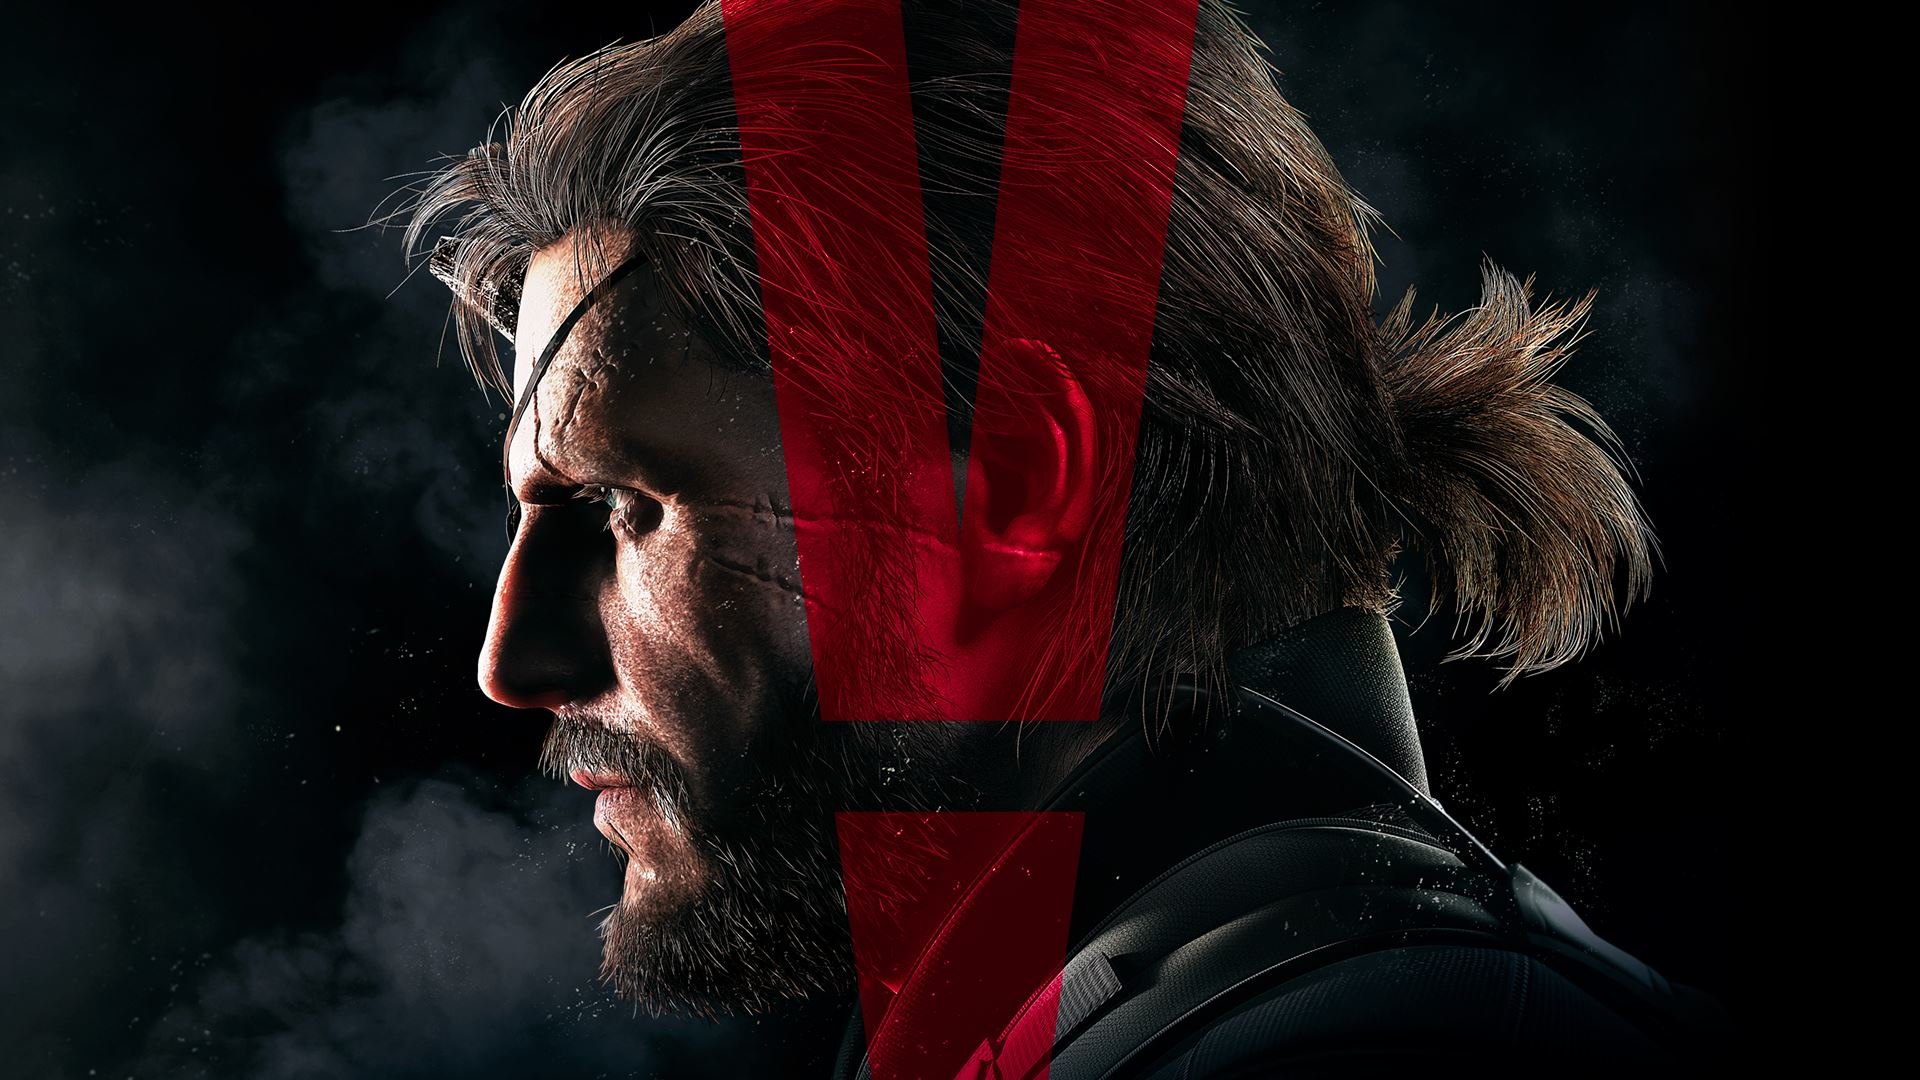 Metal Gear Solid V: The Phantom Pain Wallpapers